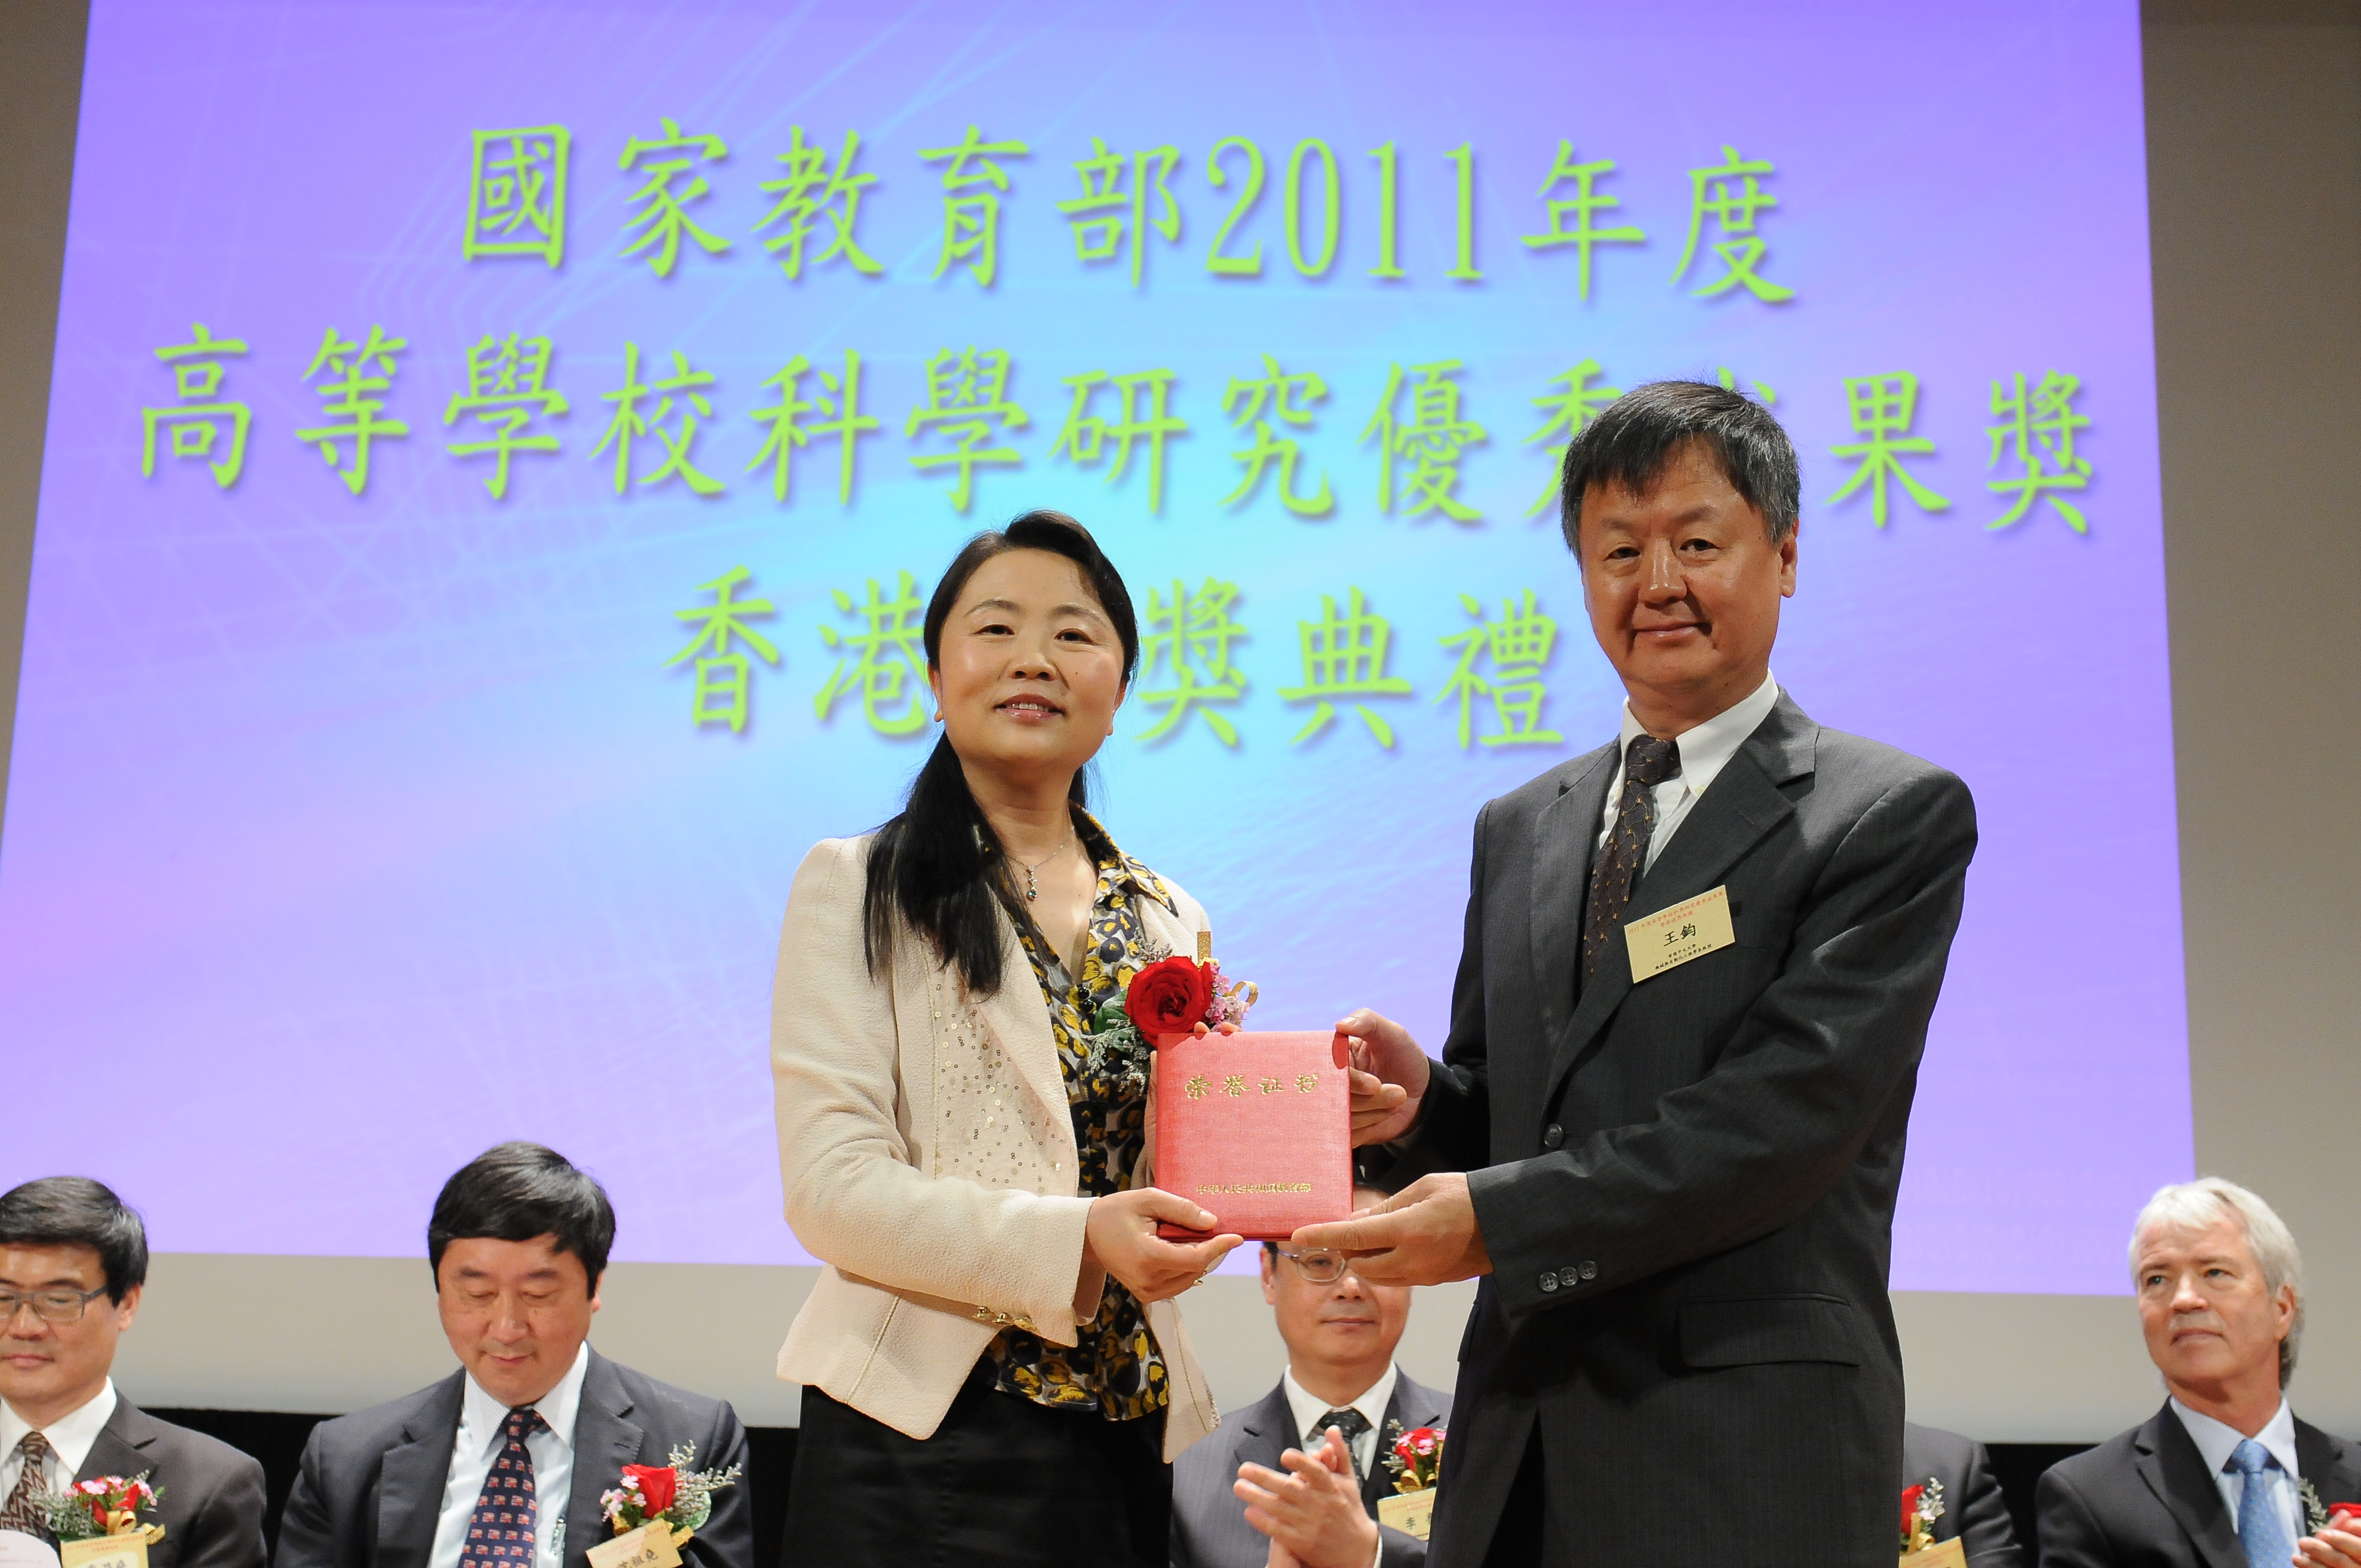 Prof. Wang Jun, Professor, Department of Mechanical and Automation Engineering, CUHK, receives his award certificate from Dr. Zhou Jing.